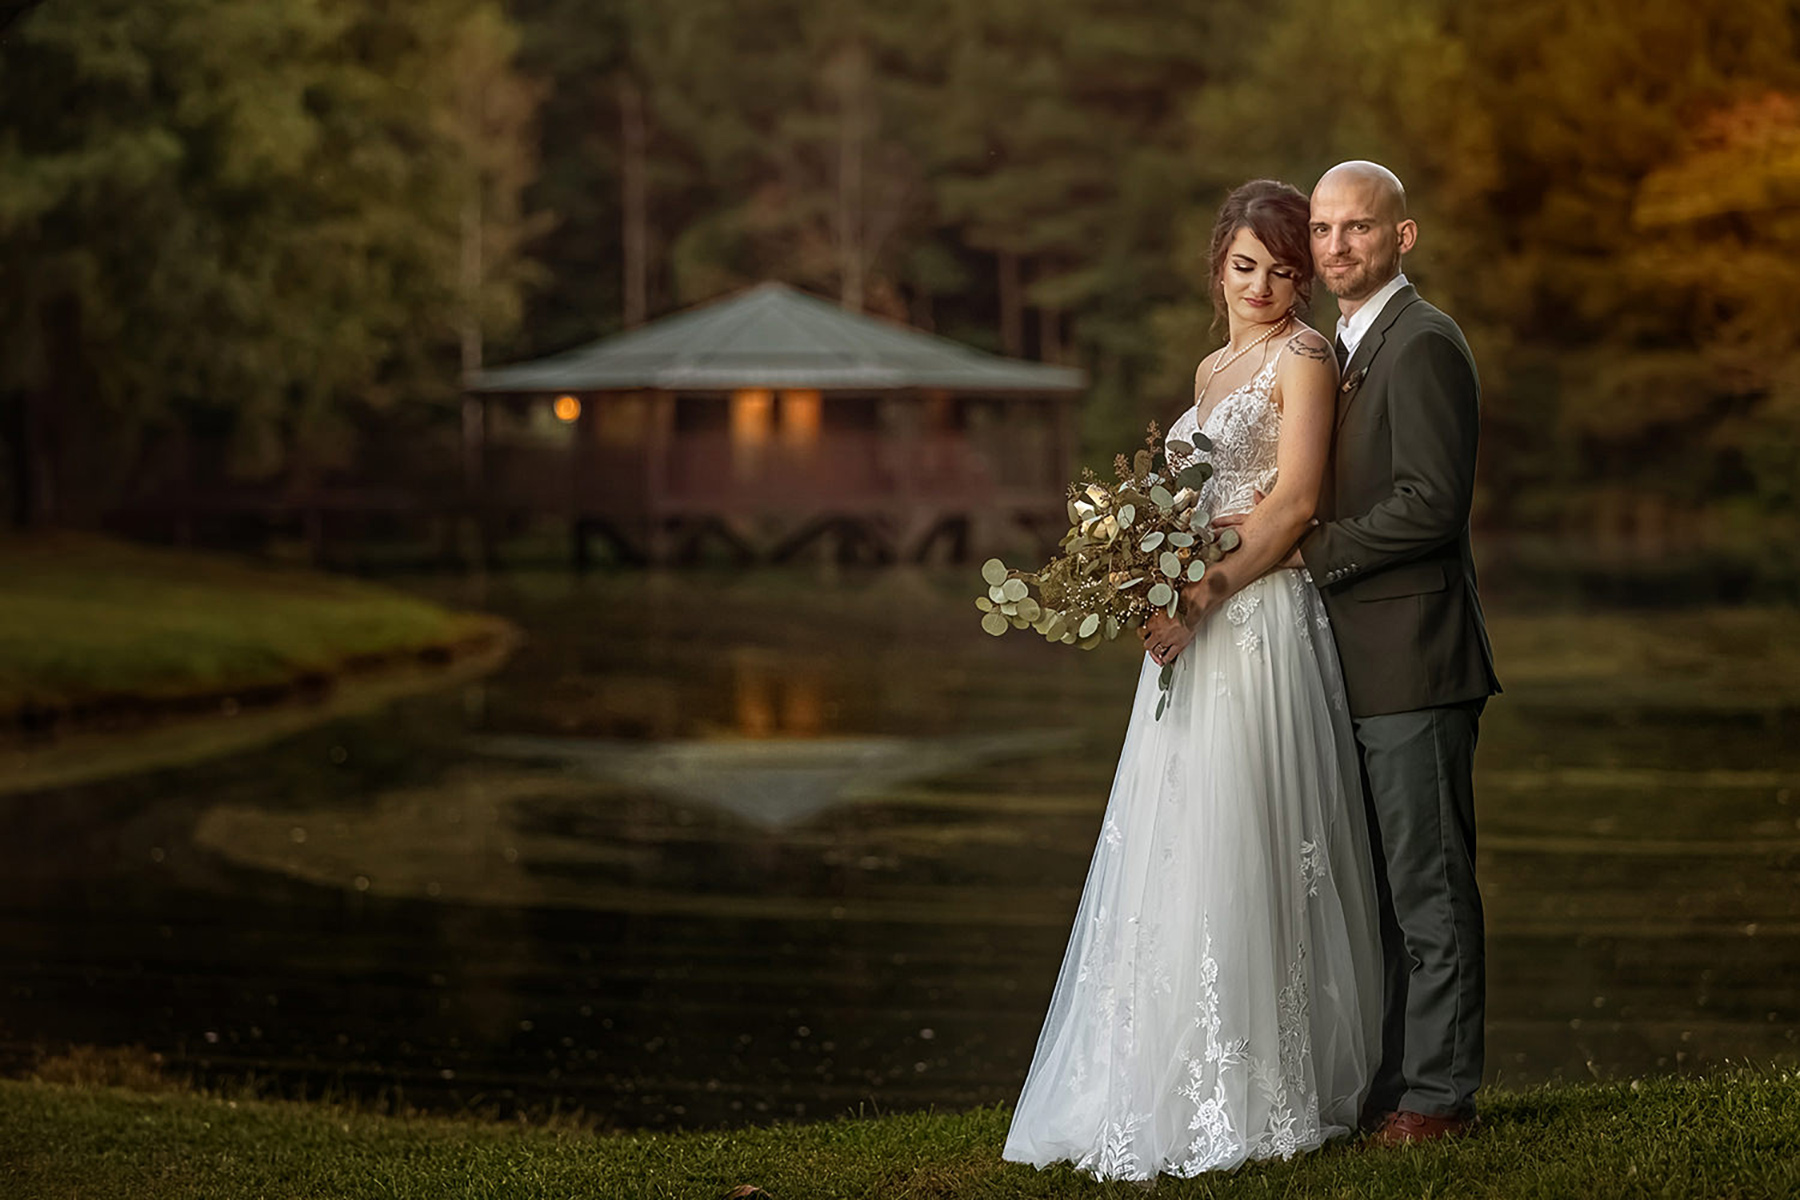 The Barn at Vahalla Wedding - Couple Embracing by the pond